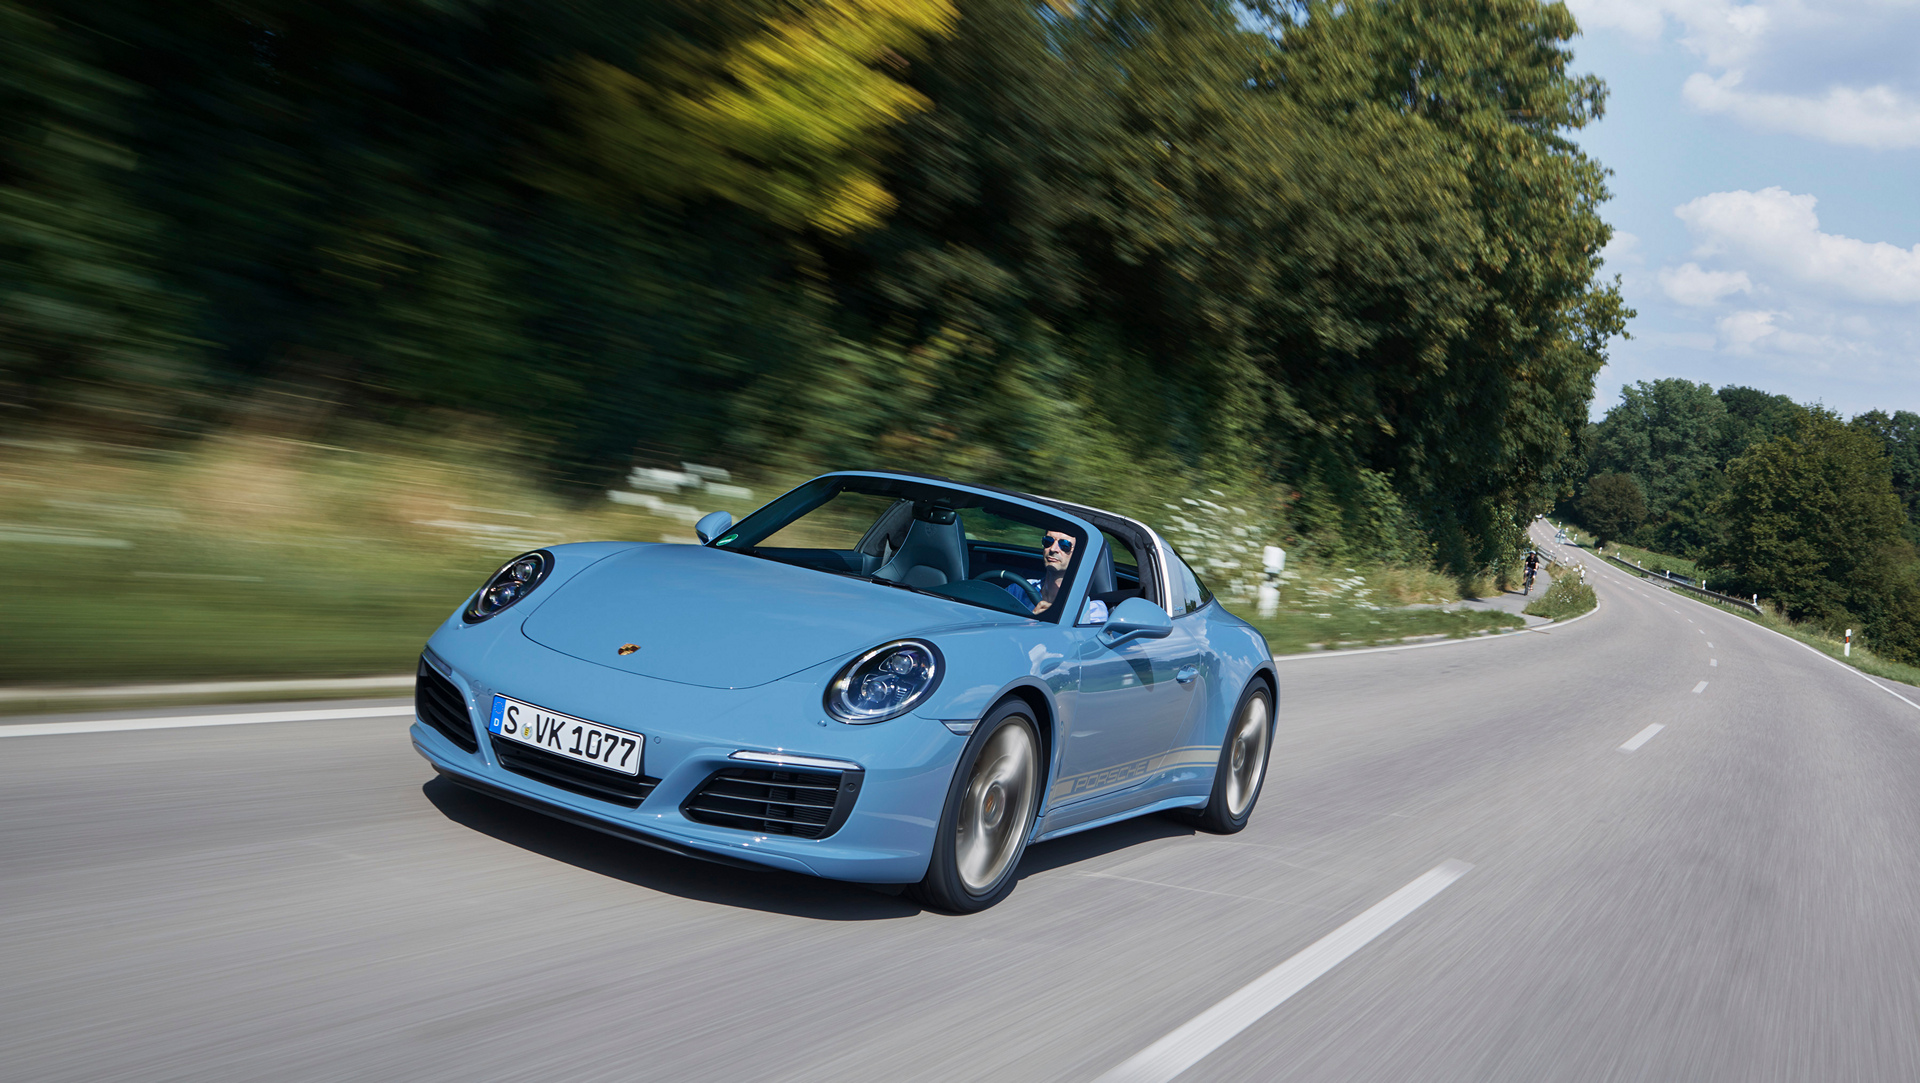 911 Targa 4S Exclusive Design Edition © Dr. Ing. h.c. F. Porsche AG